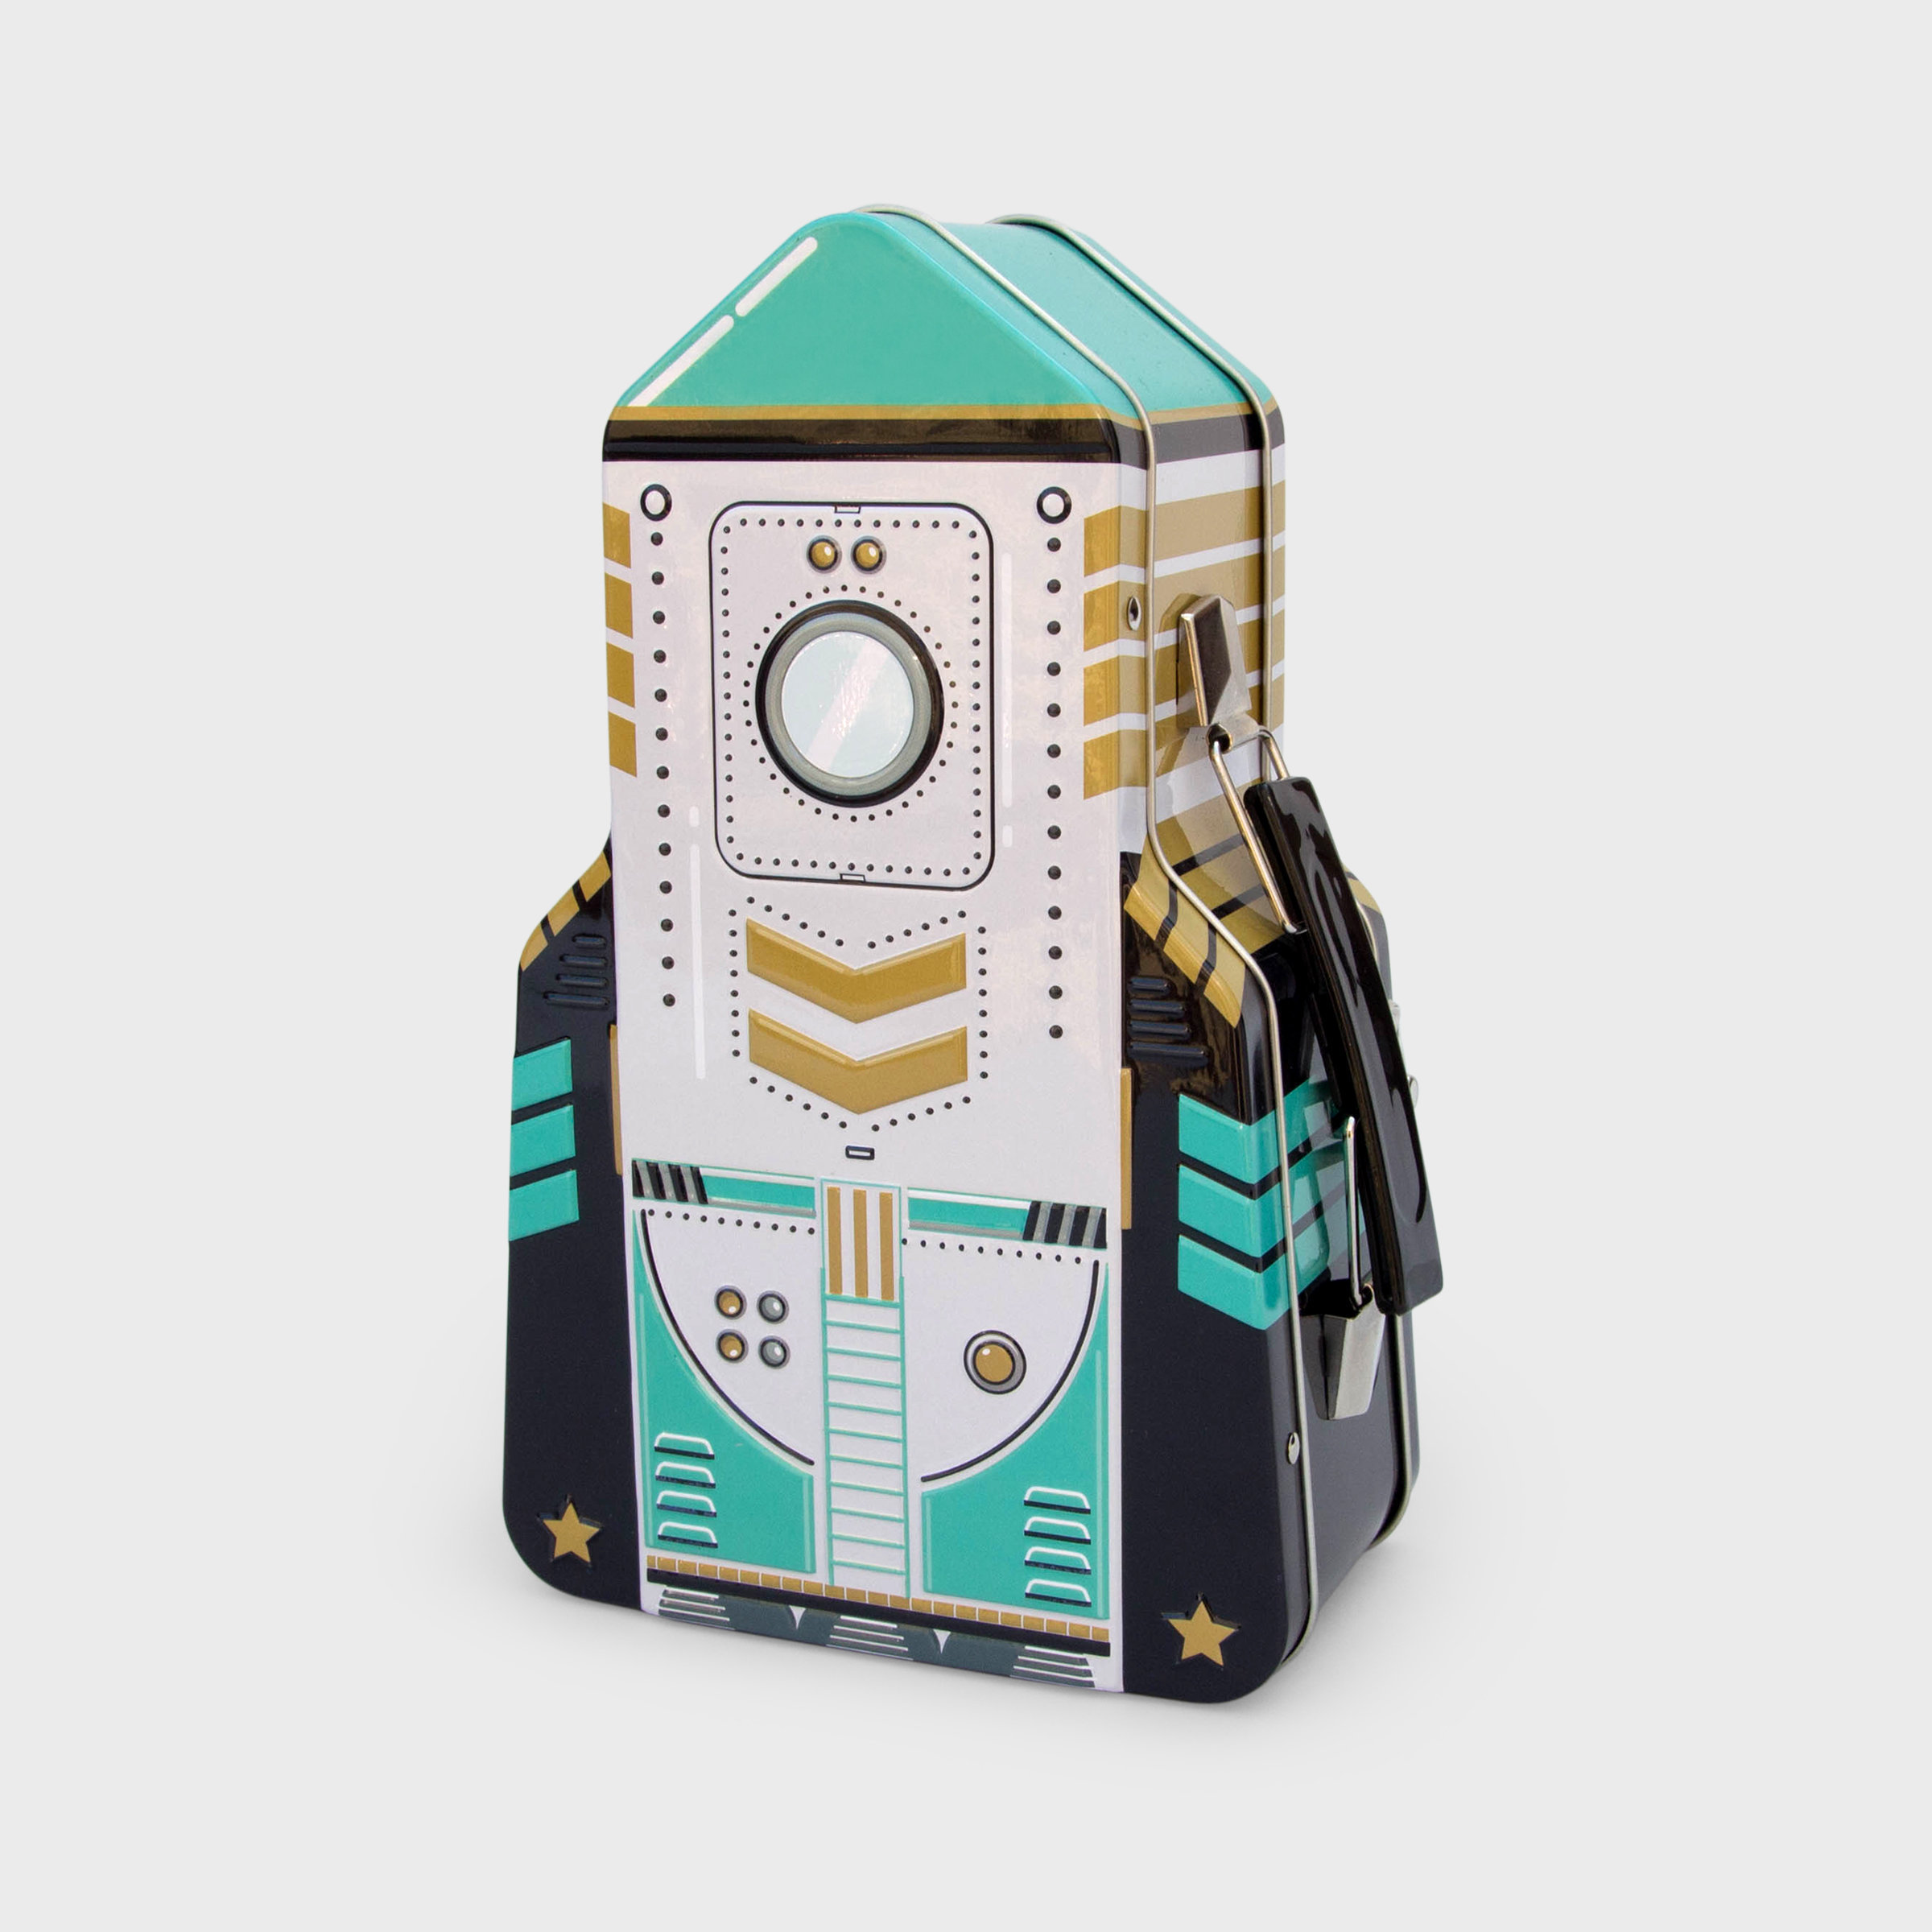 Tin rocket lunchbox in green gold and black